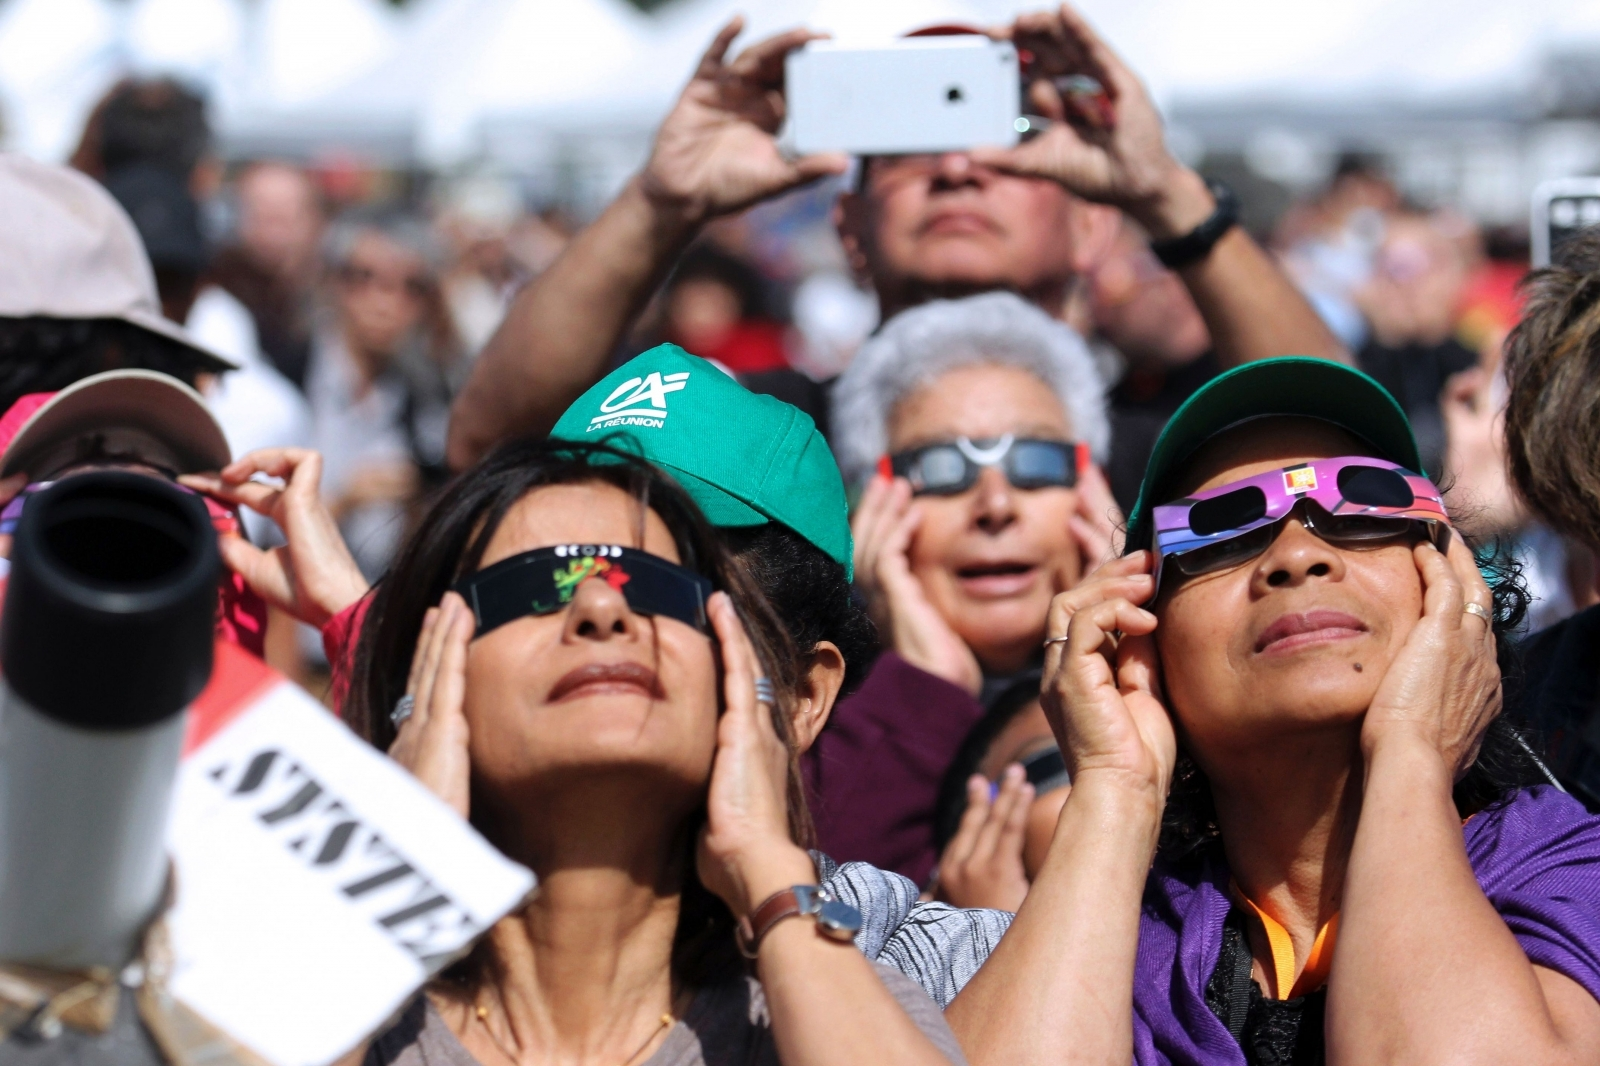 Amazon issuing refund for fake eclipse glasses